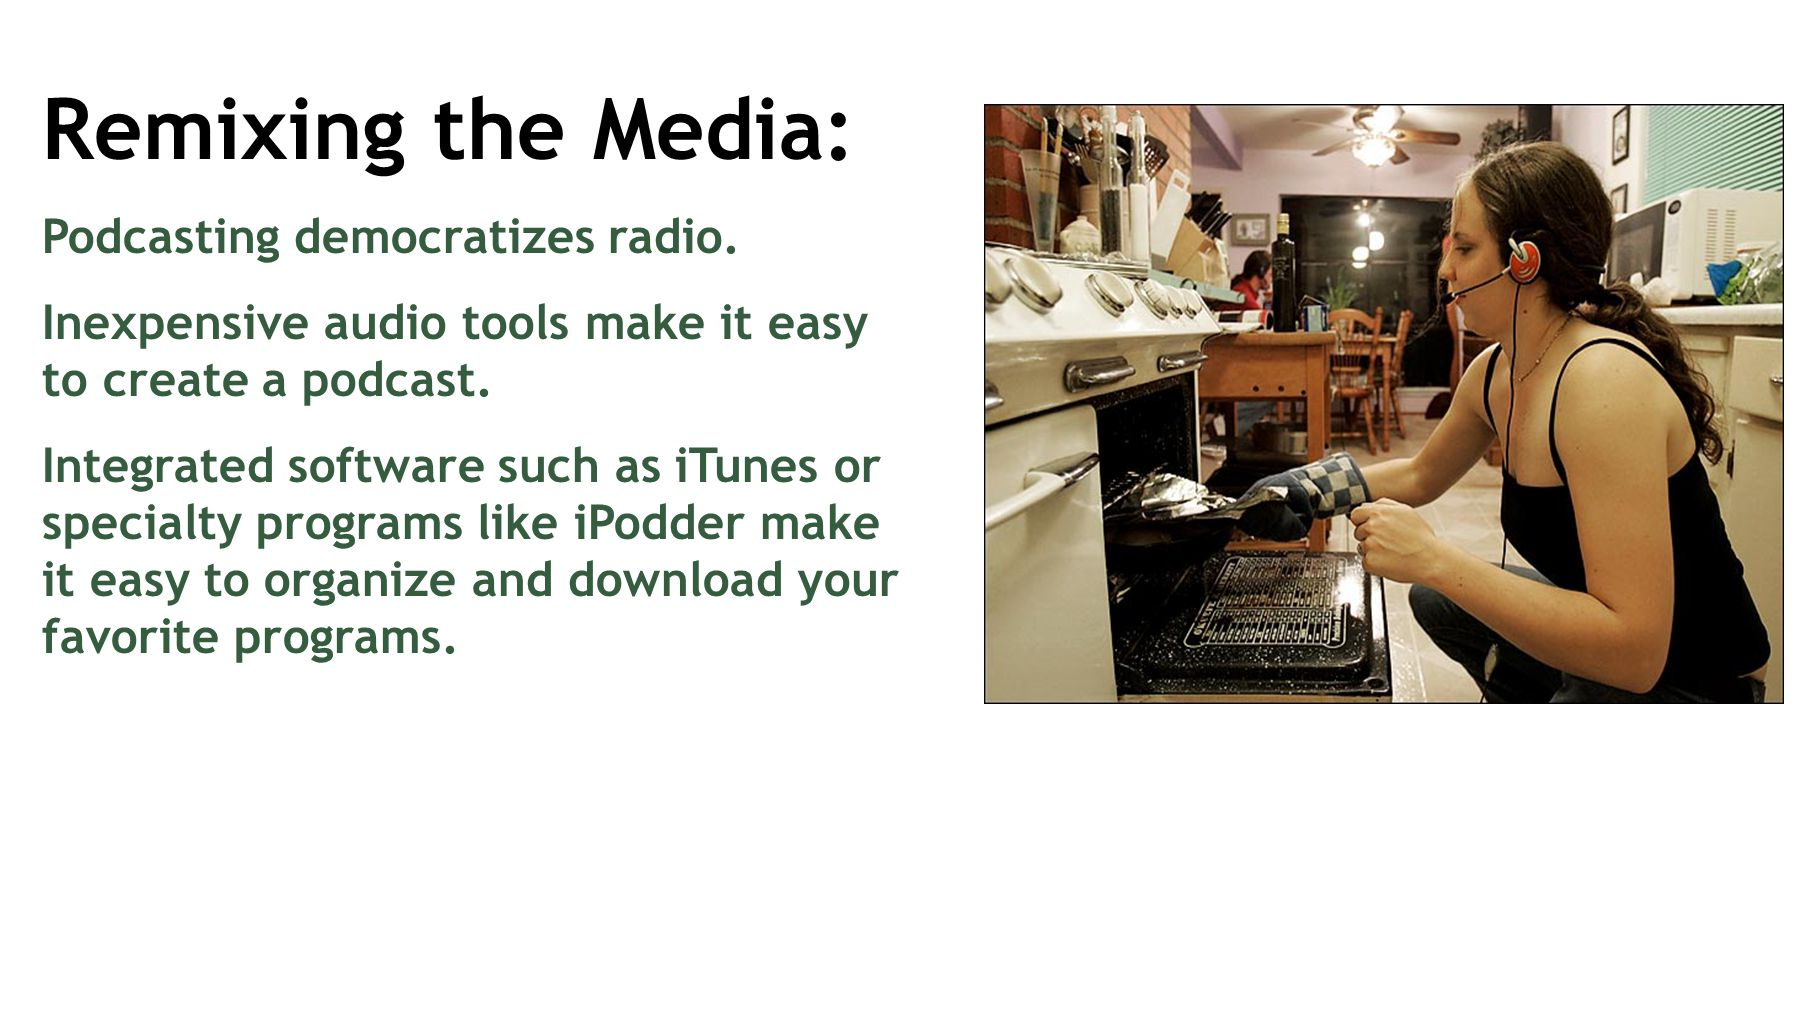 Remixing the Media: Podcasting democratizes radio. Inexpensive audio tools make it easy to create a podcast. Integrated software such as iTunes or spe